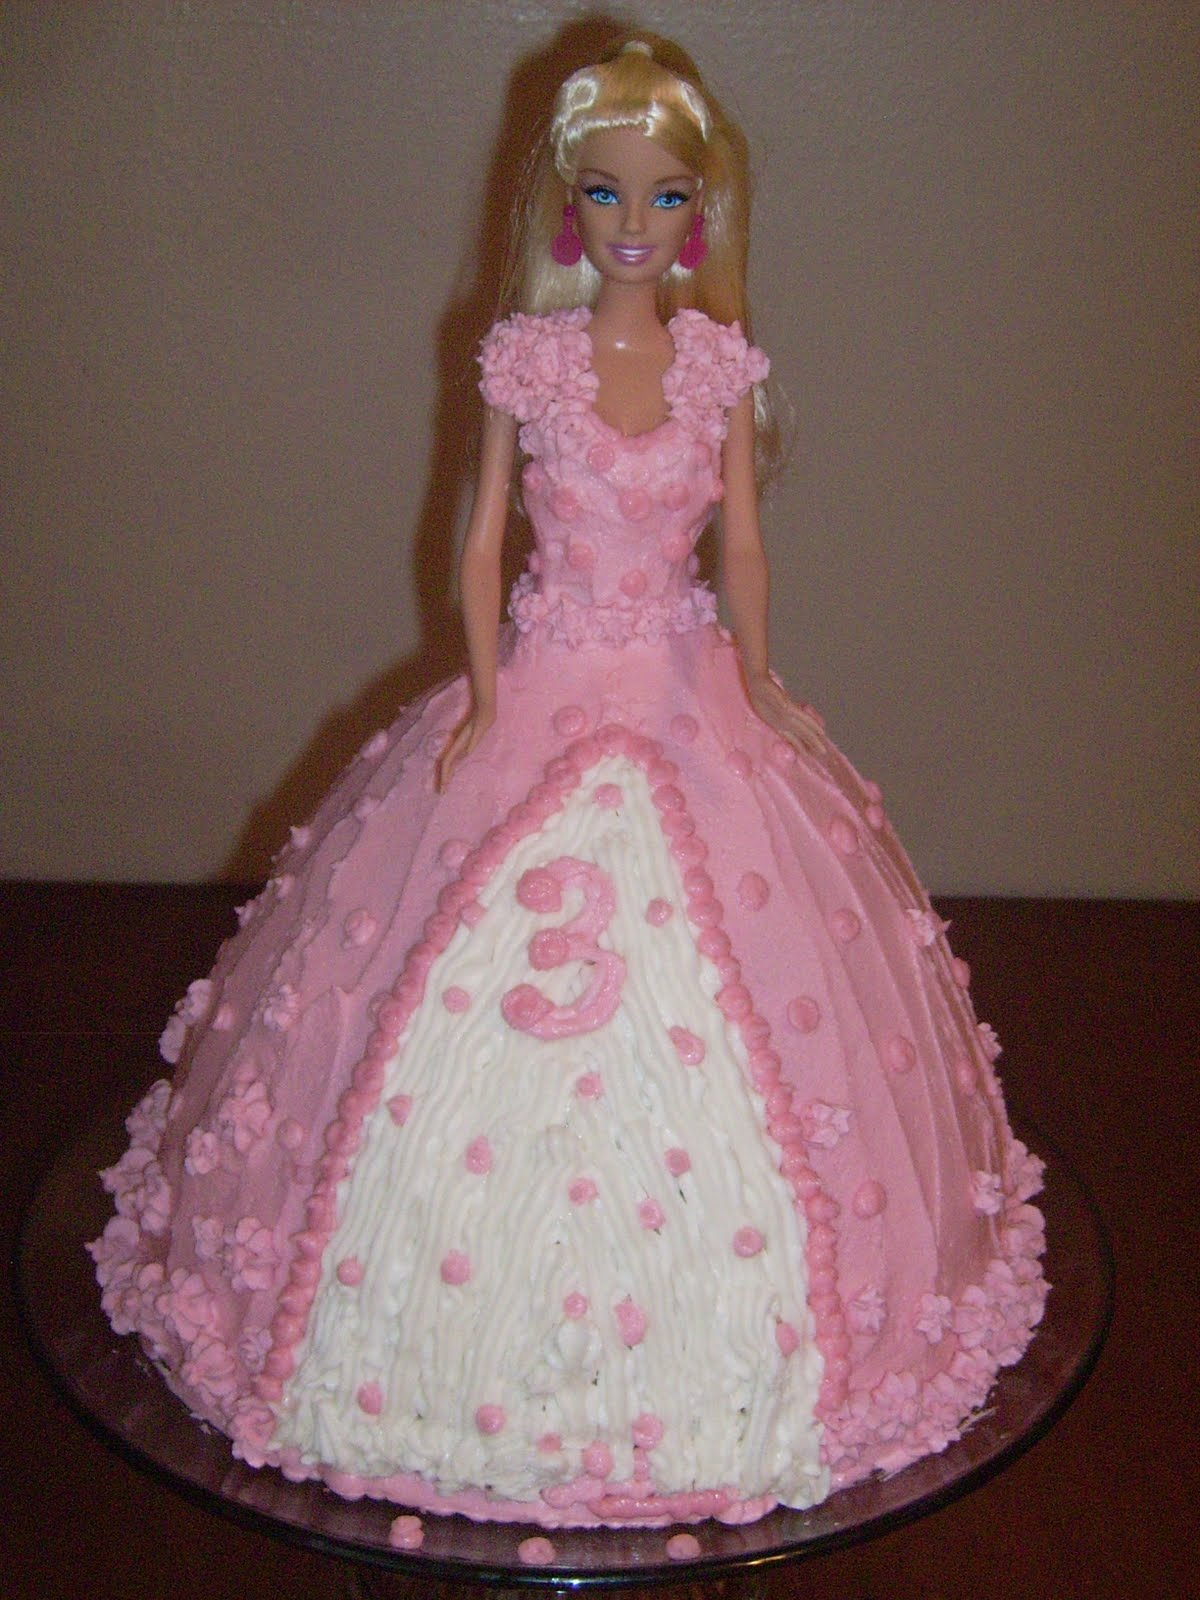 Cake Design Barbie : Talented Terrace Girls: Wild Card Wednesday:Barbie ...